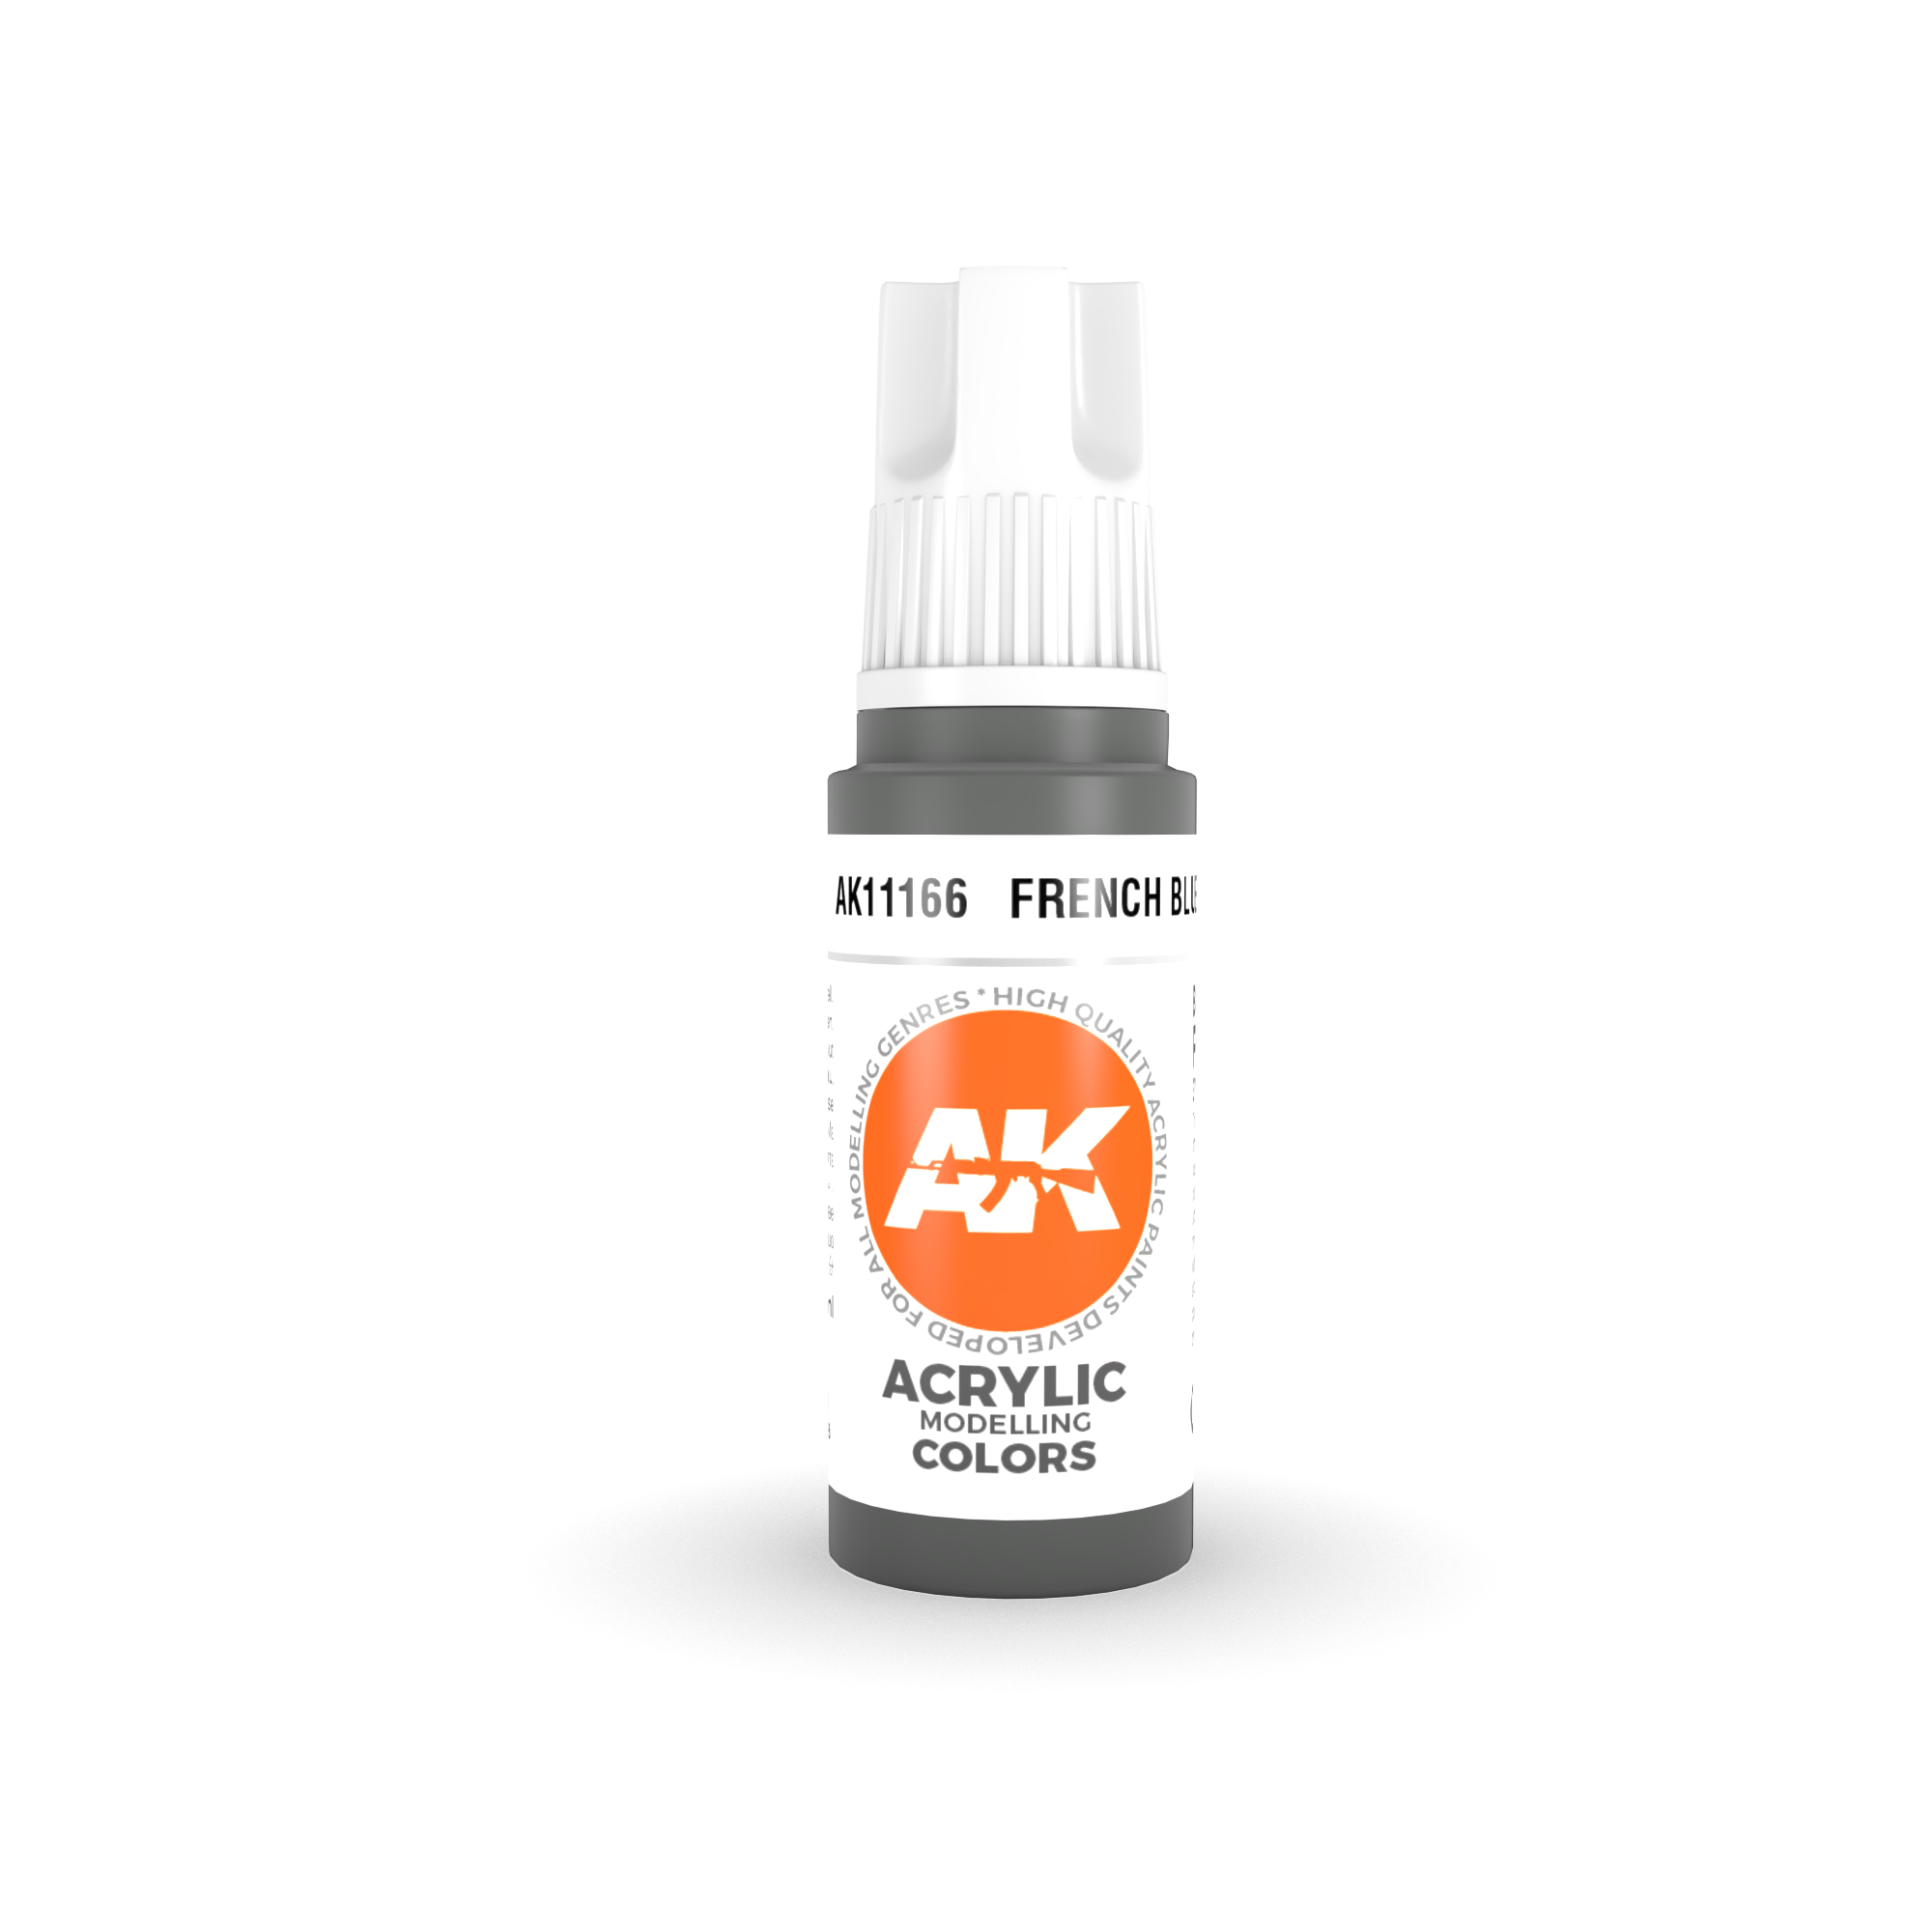 AK-Interactive French Blue Acrylic Modelling Color - 17ml - AK-11166